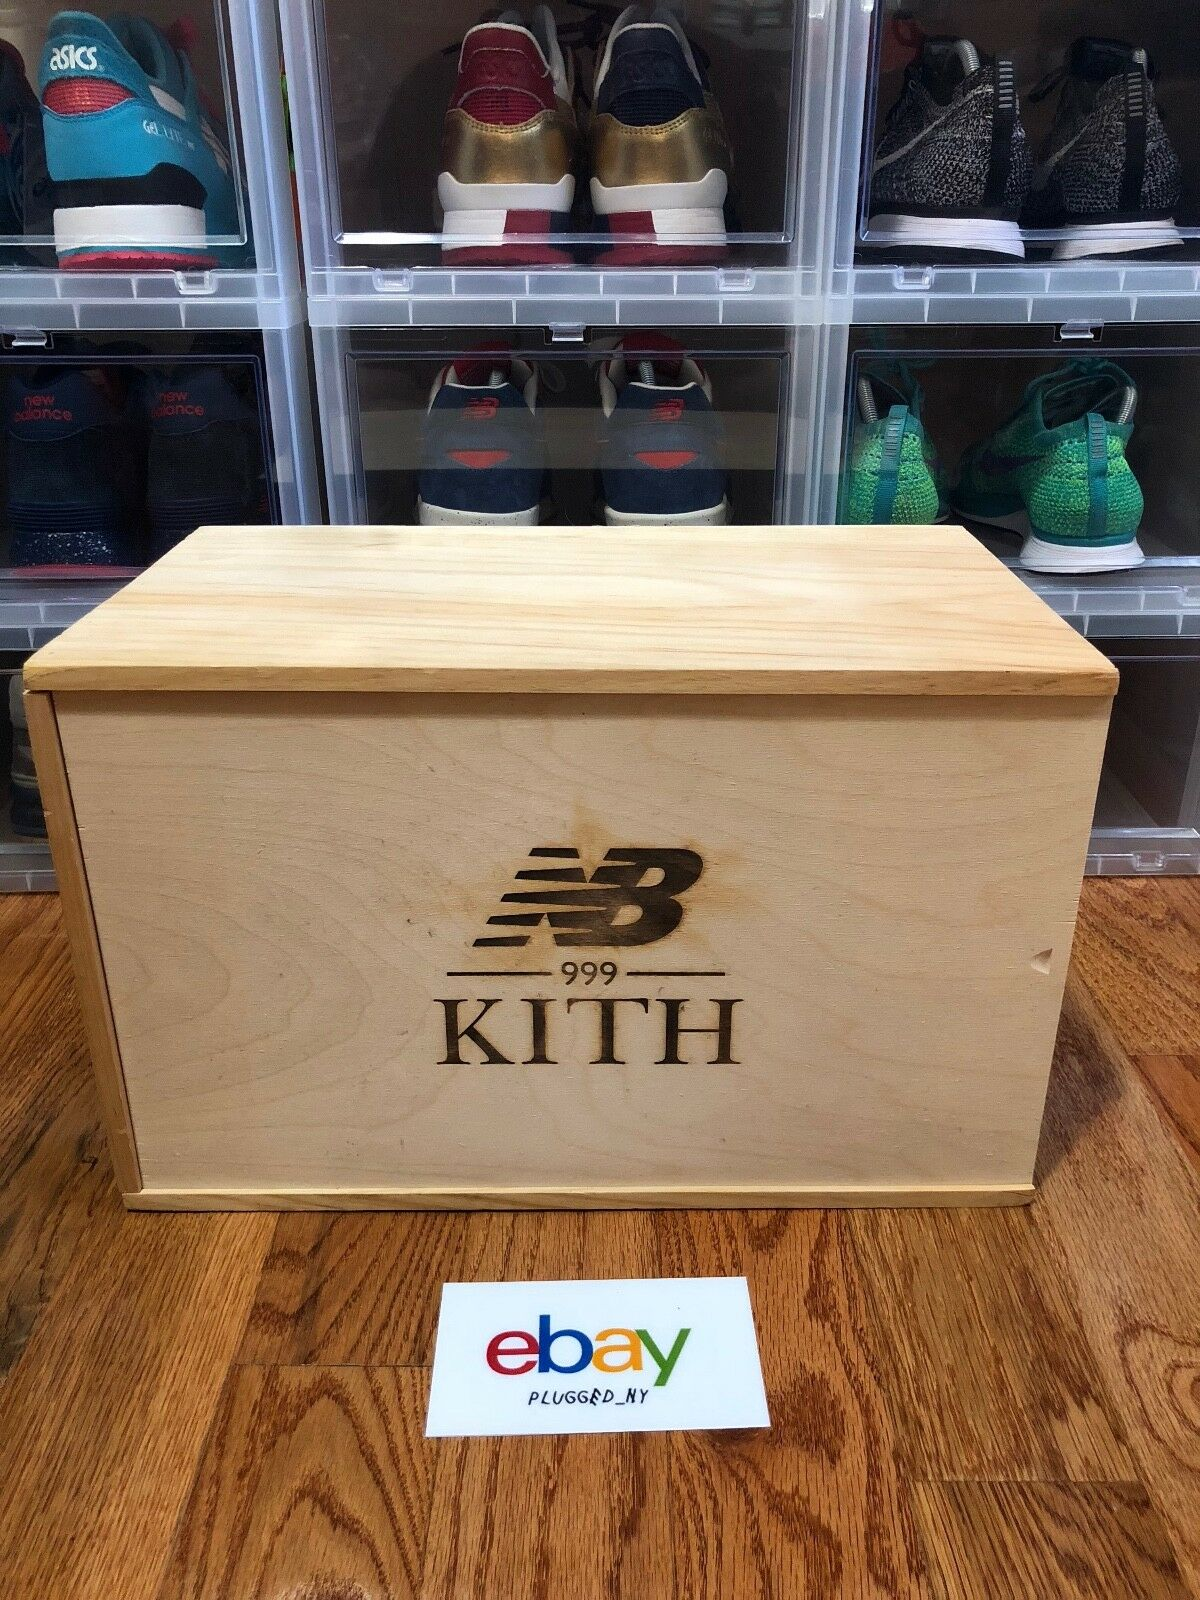 New Balance 999 Steel Blue Kith Ronnie Fieg Special Wooden Crate Sz 9 VNDS